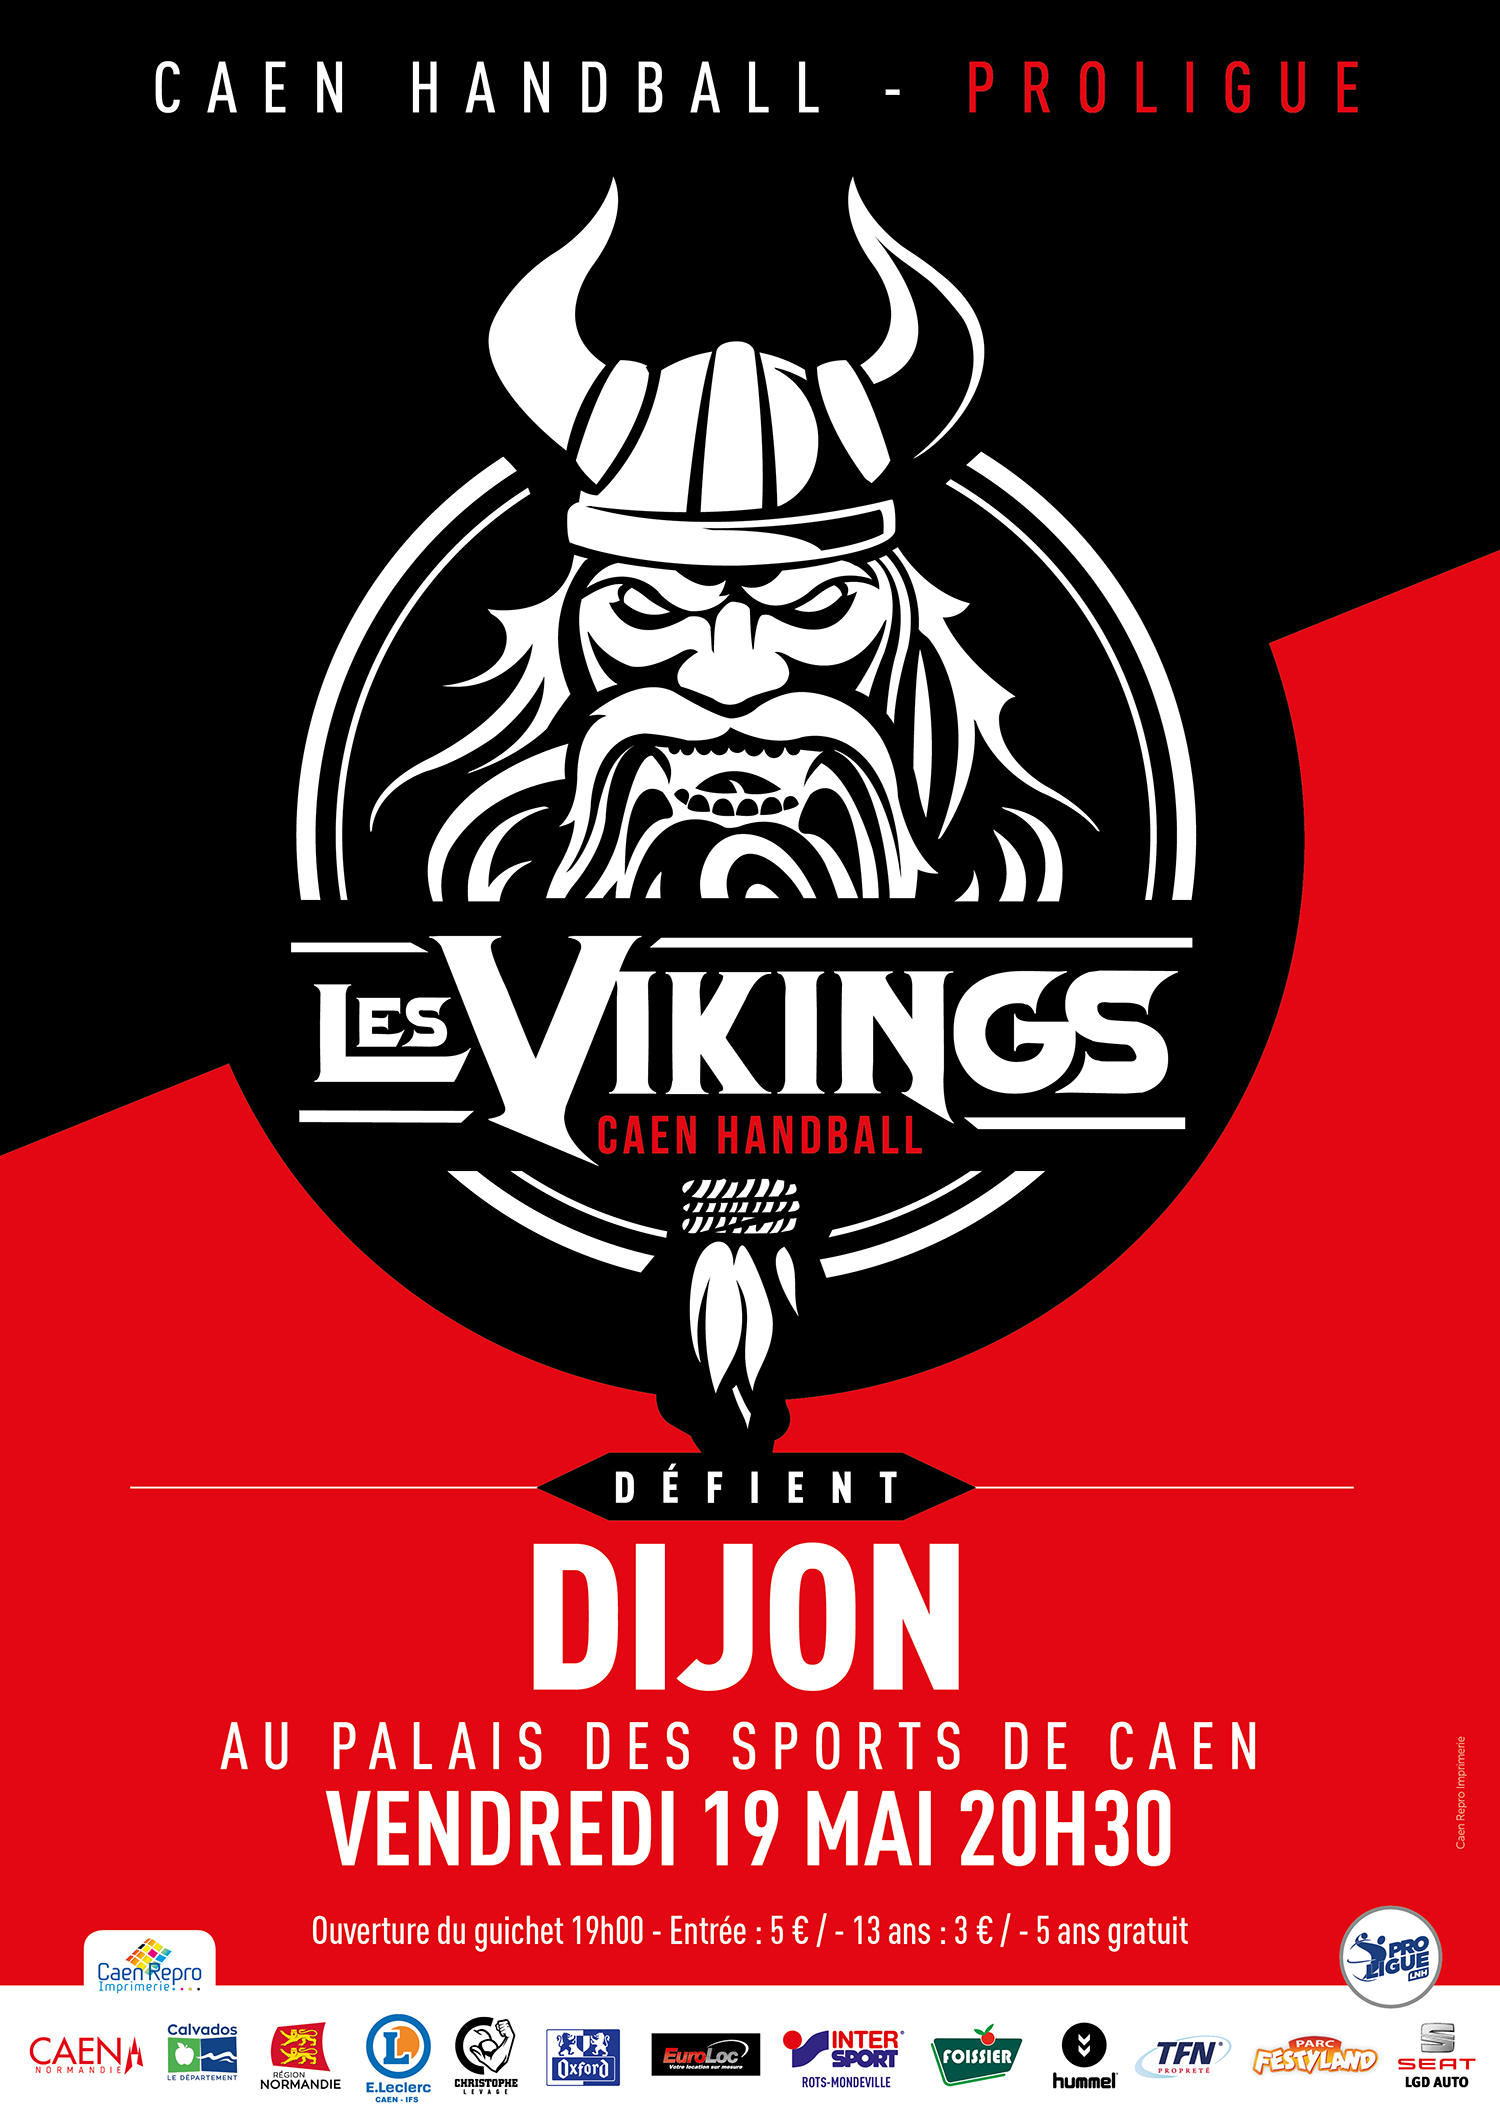 VIKING PROLIGUE DIJON MAI Web